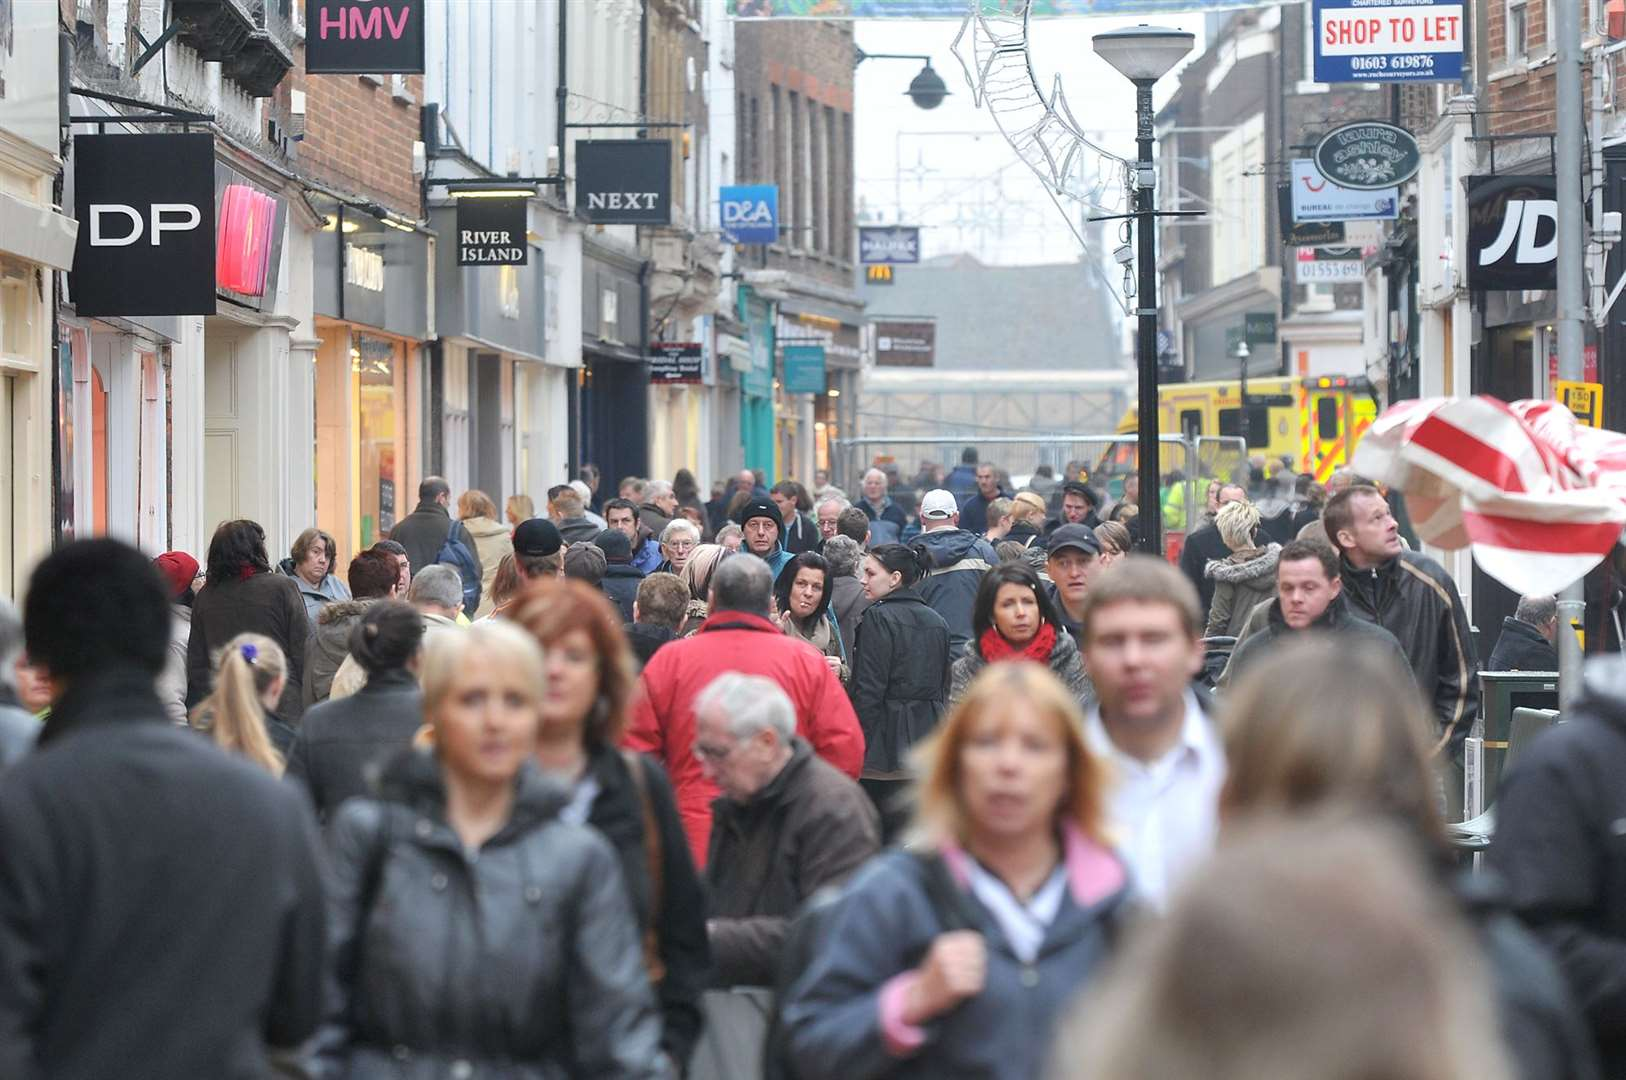 What should be done to bring the crowds back to Lynn's town centre?